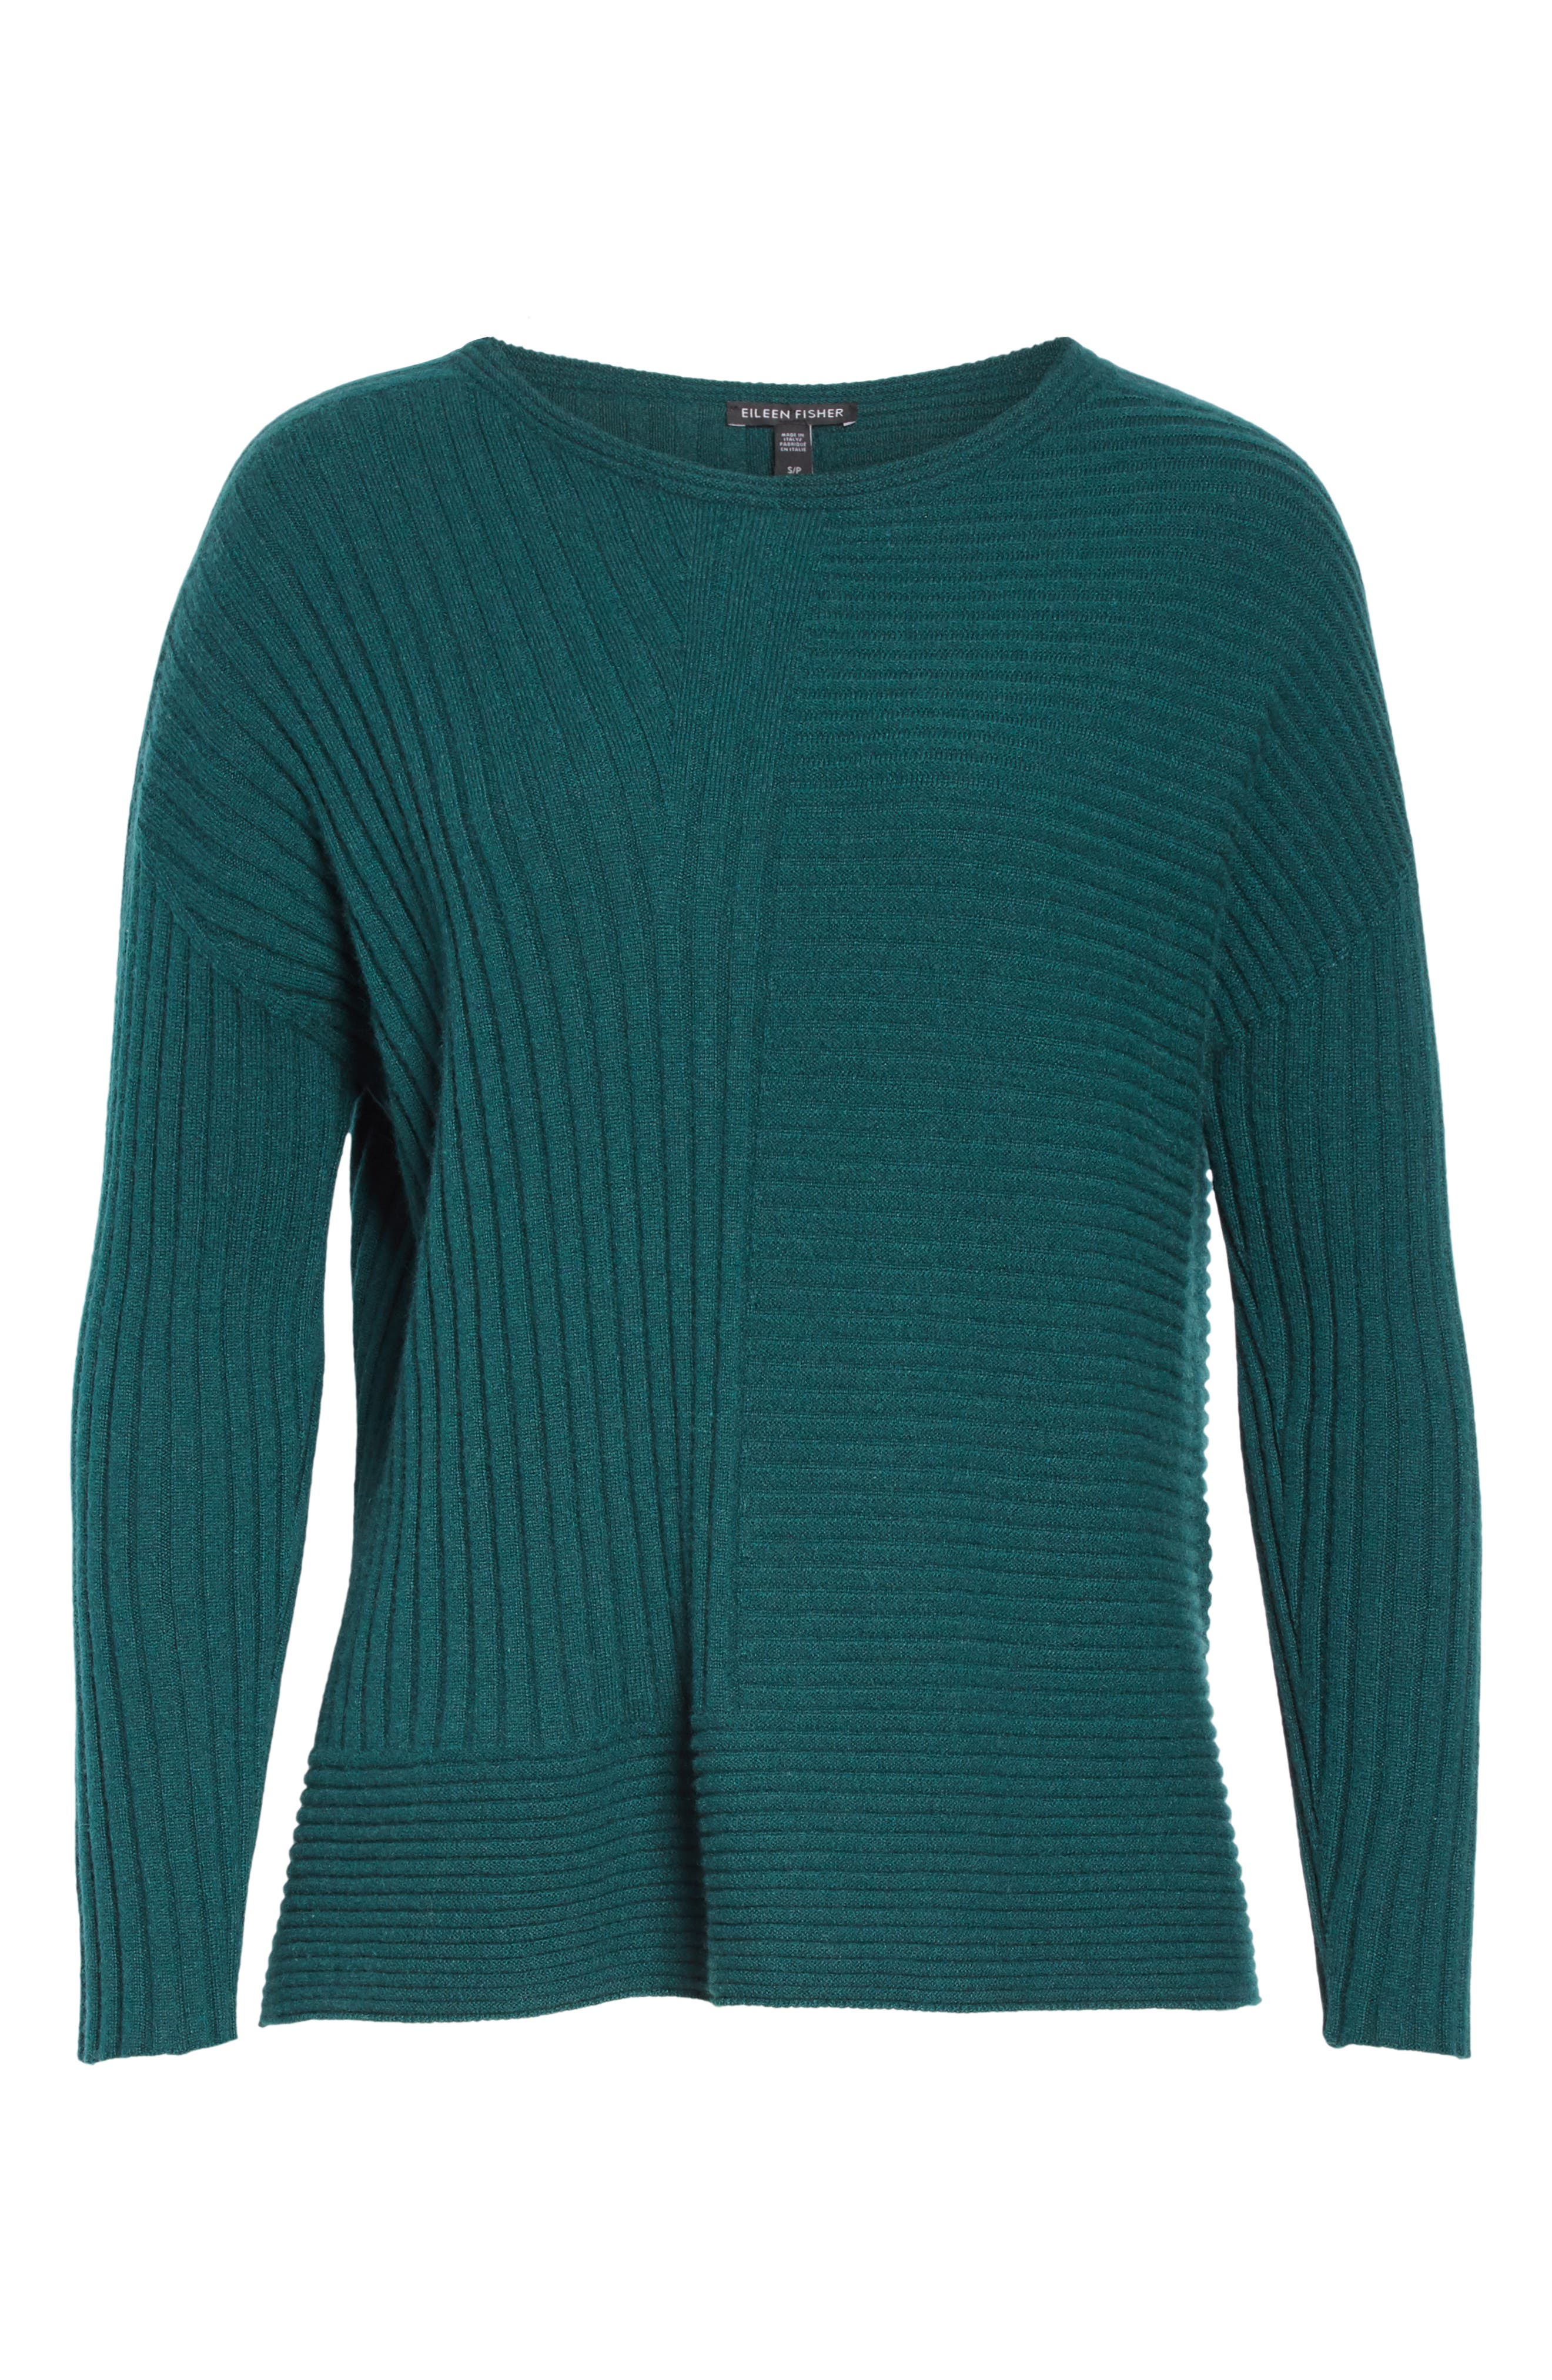 Ribbed Cashmere Sweater,                             Alternate thumbnail 6, color,                             303